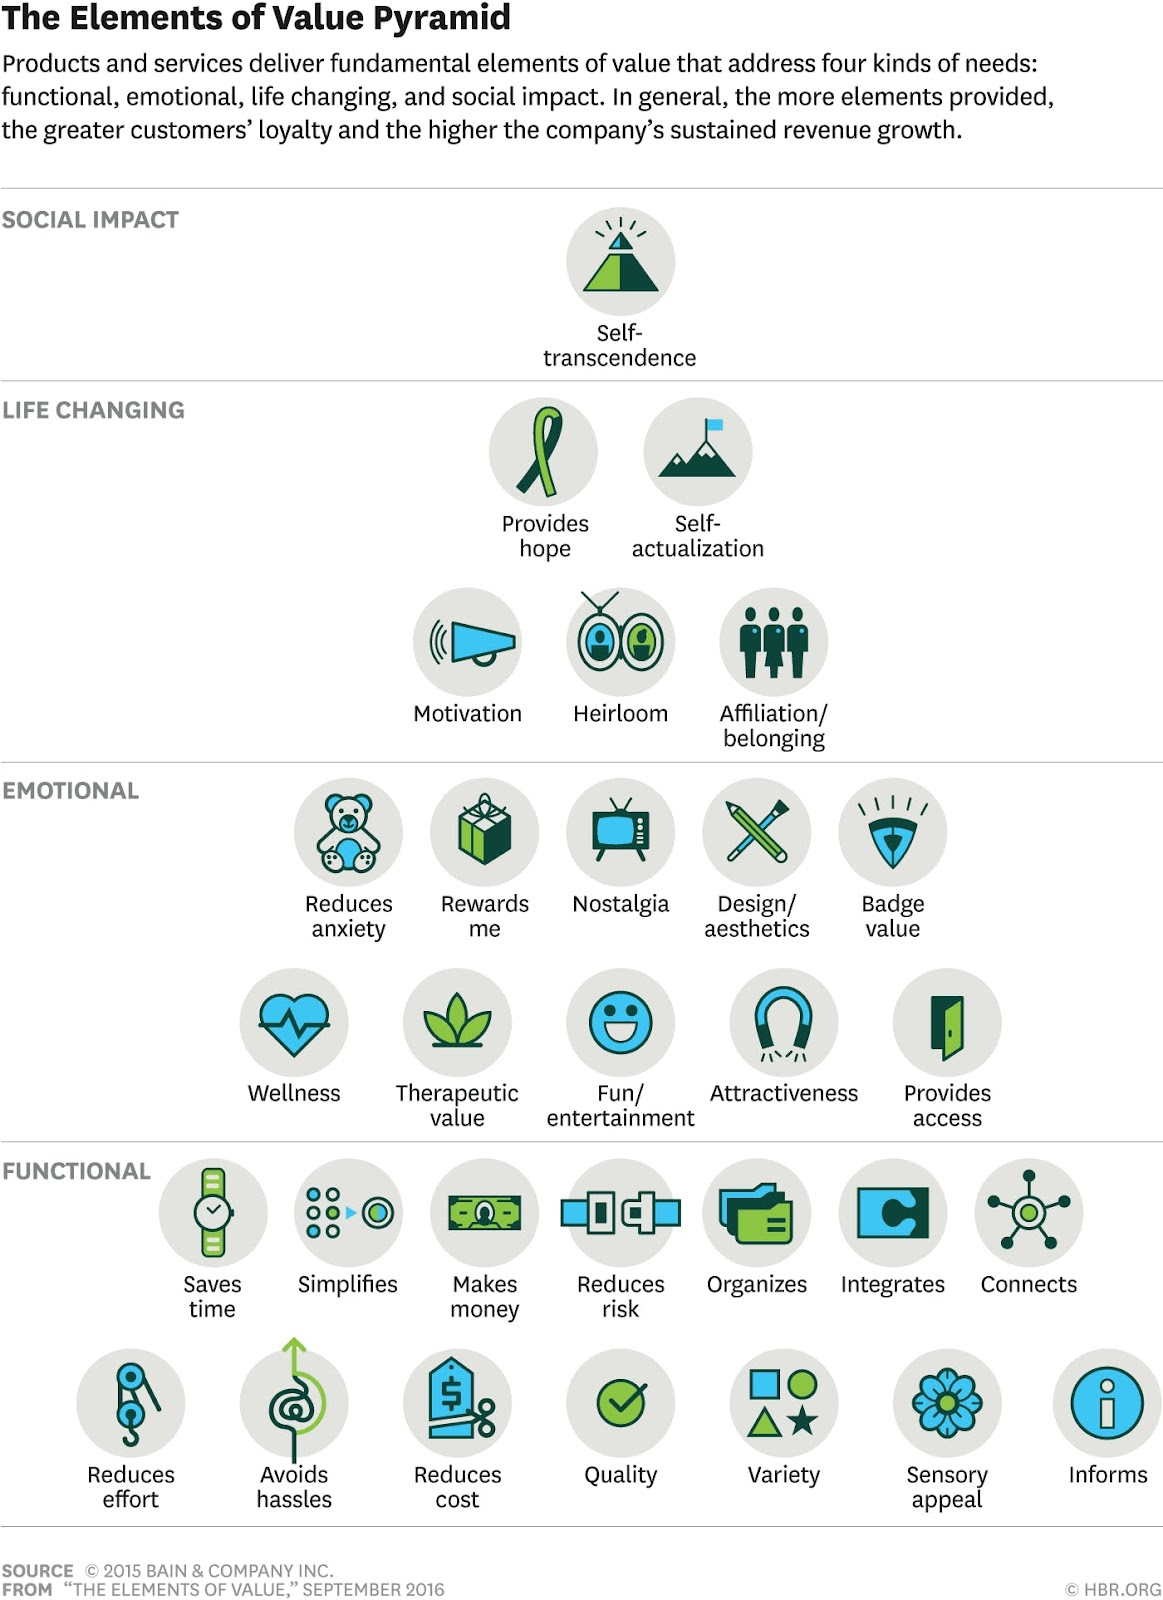 The Value Pyramid illustrates the reasons people buy after being exposed to a buying trigger